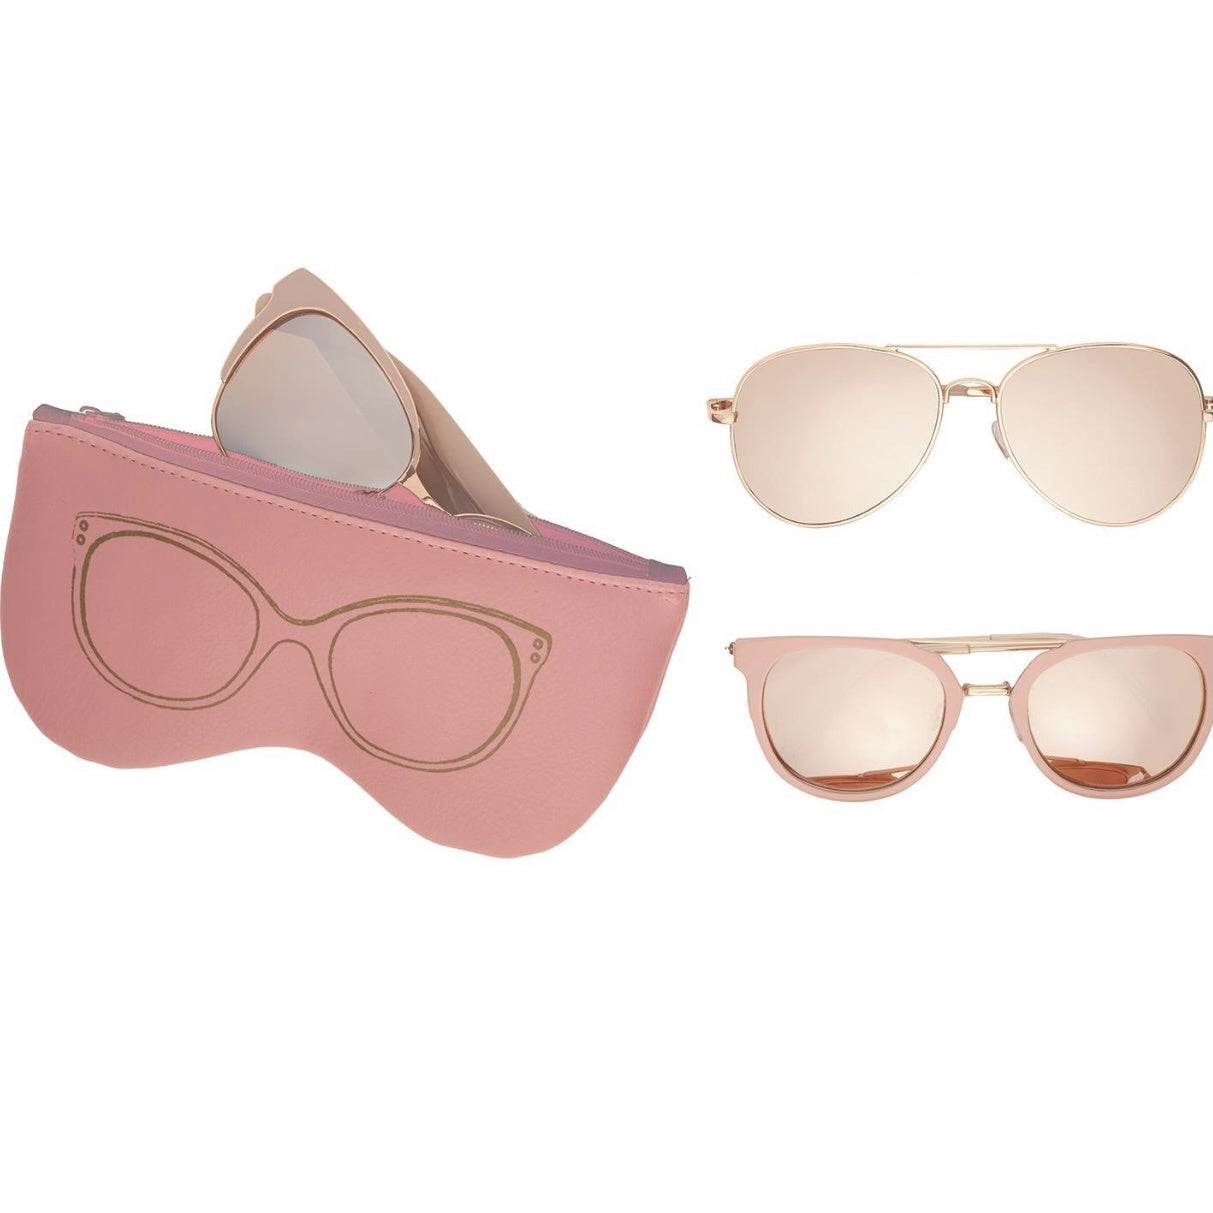 Rose Gold Sunglasses with Pouch